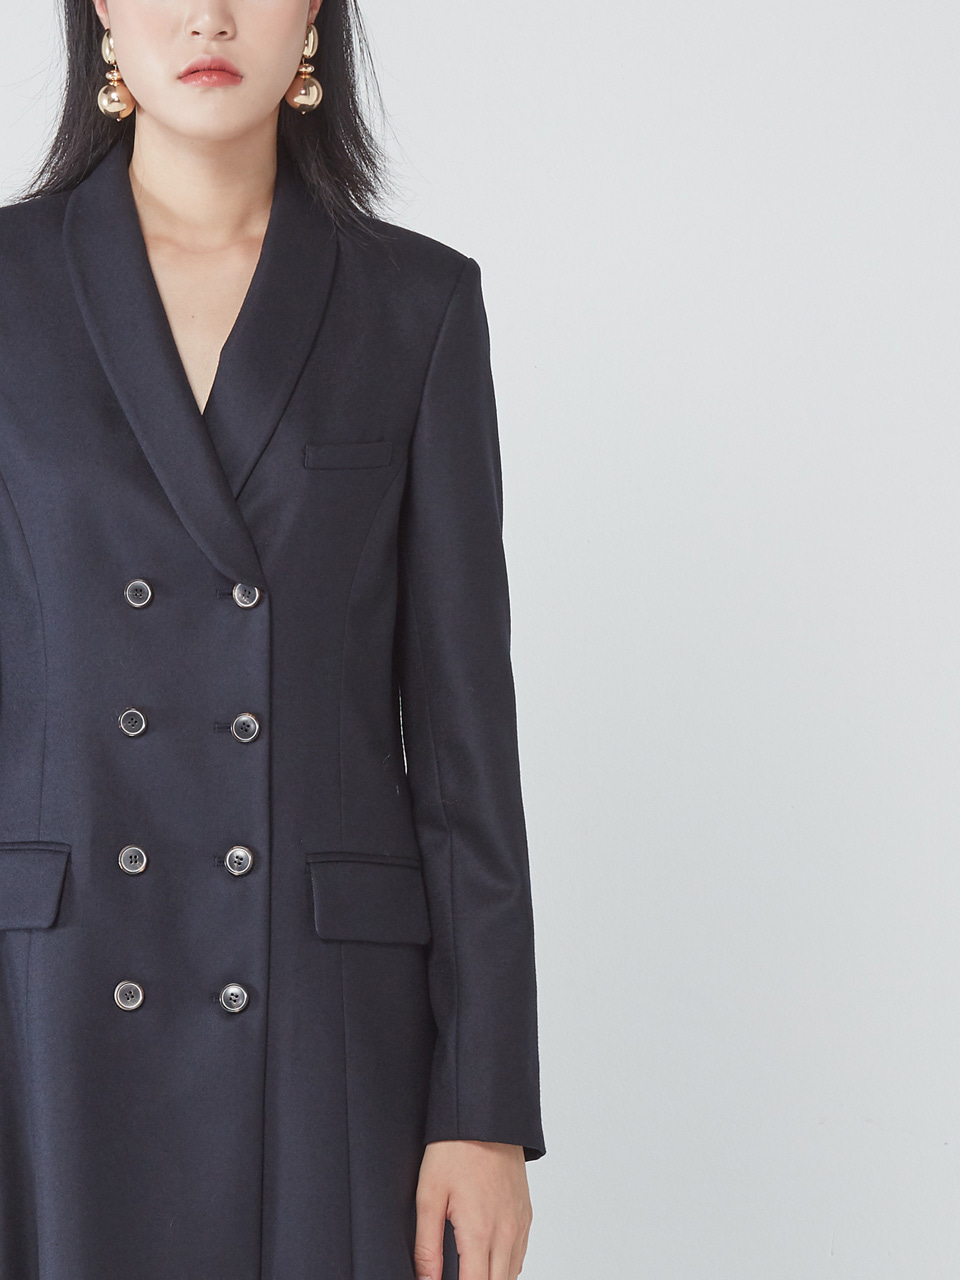 [WINTER SALE 20%] TUX JACKET DRESS _ NAVY